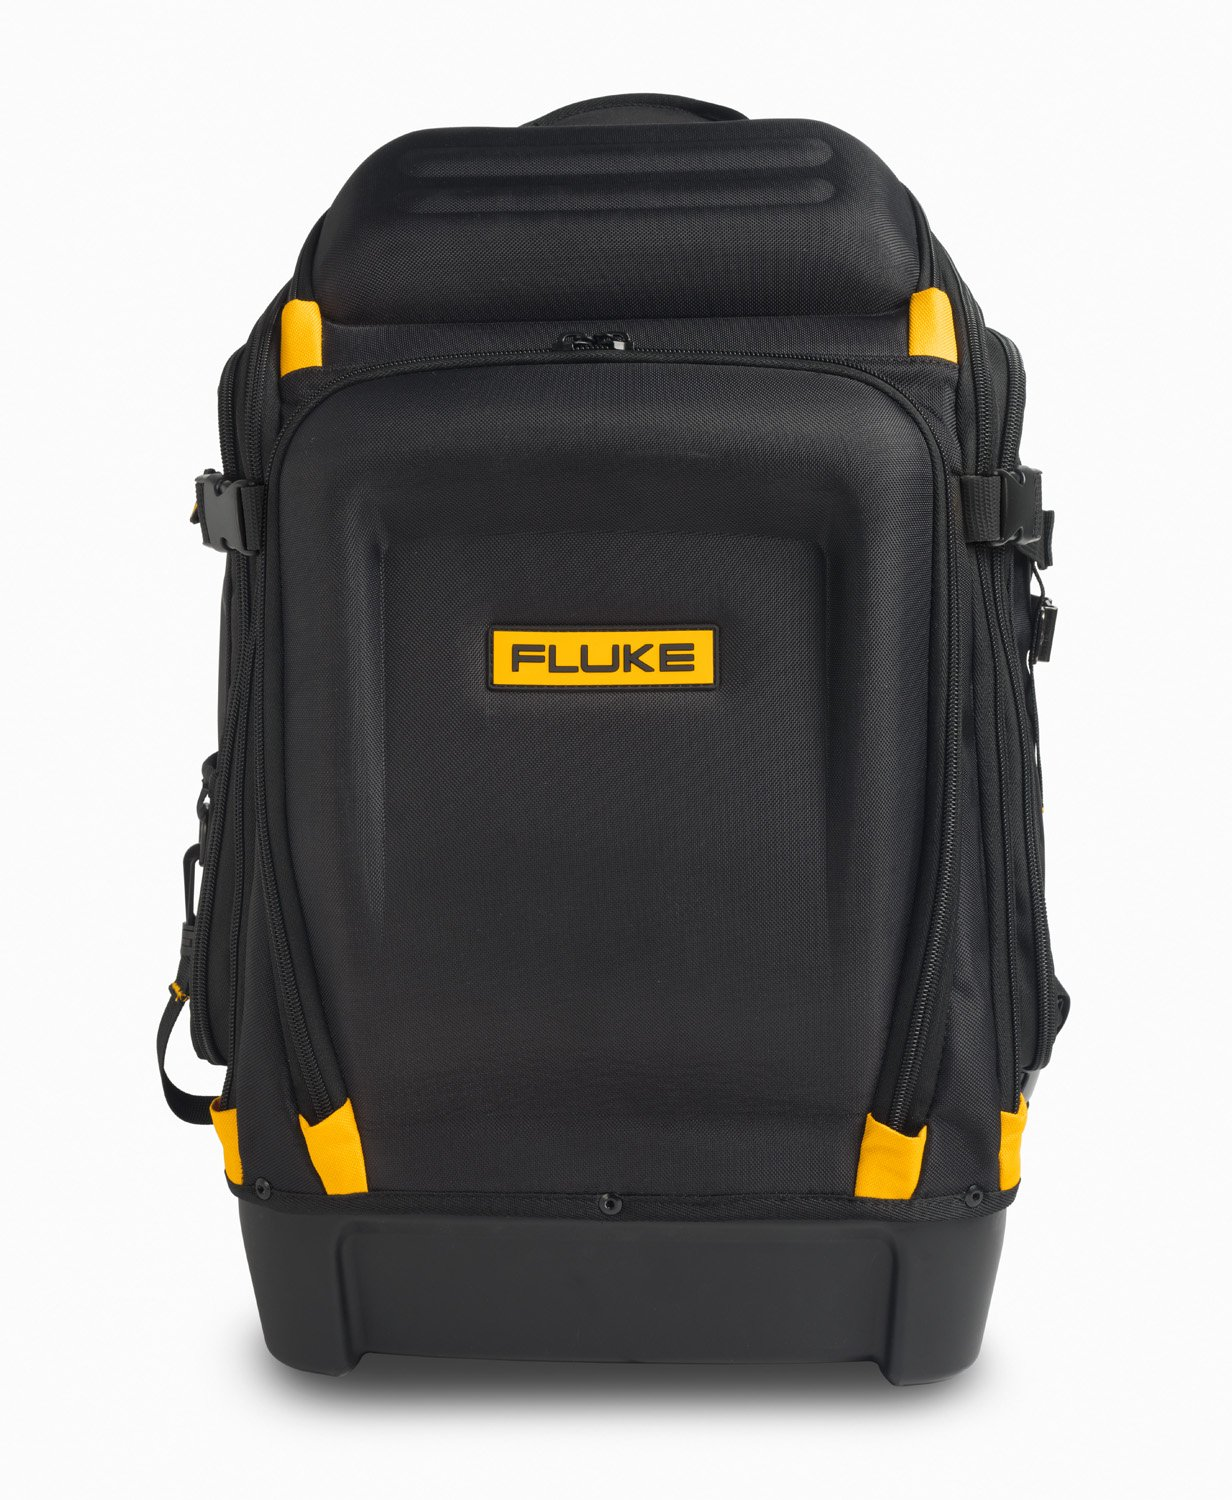 Fluke Pack30 Professional Tool Backpack by Fluke